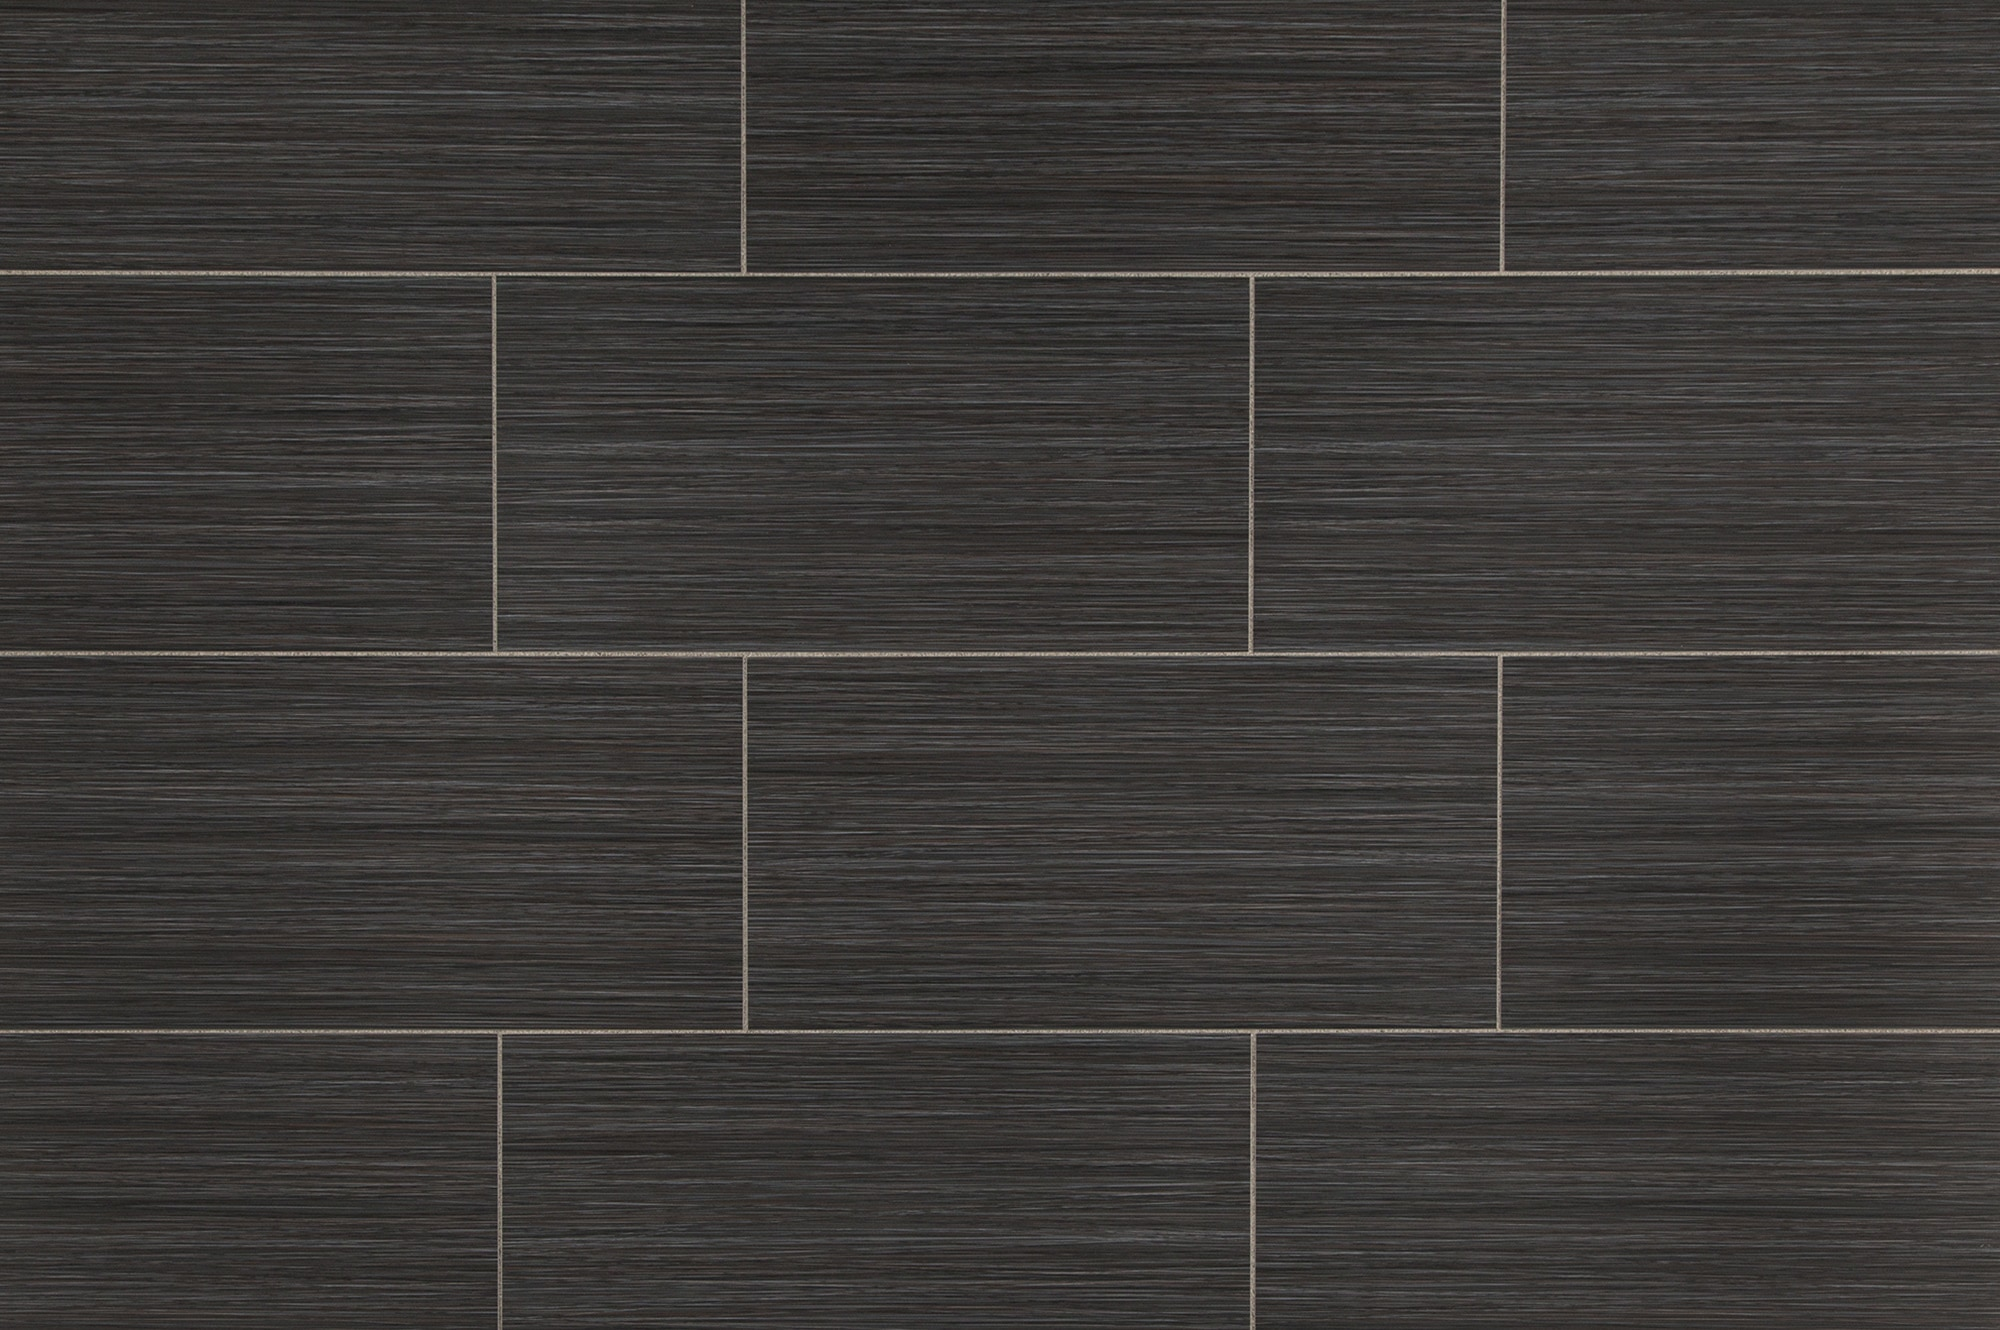 Free samples salerno porcelain tile raw silk series black 12x24 doublecrazyfo Image collections